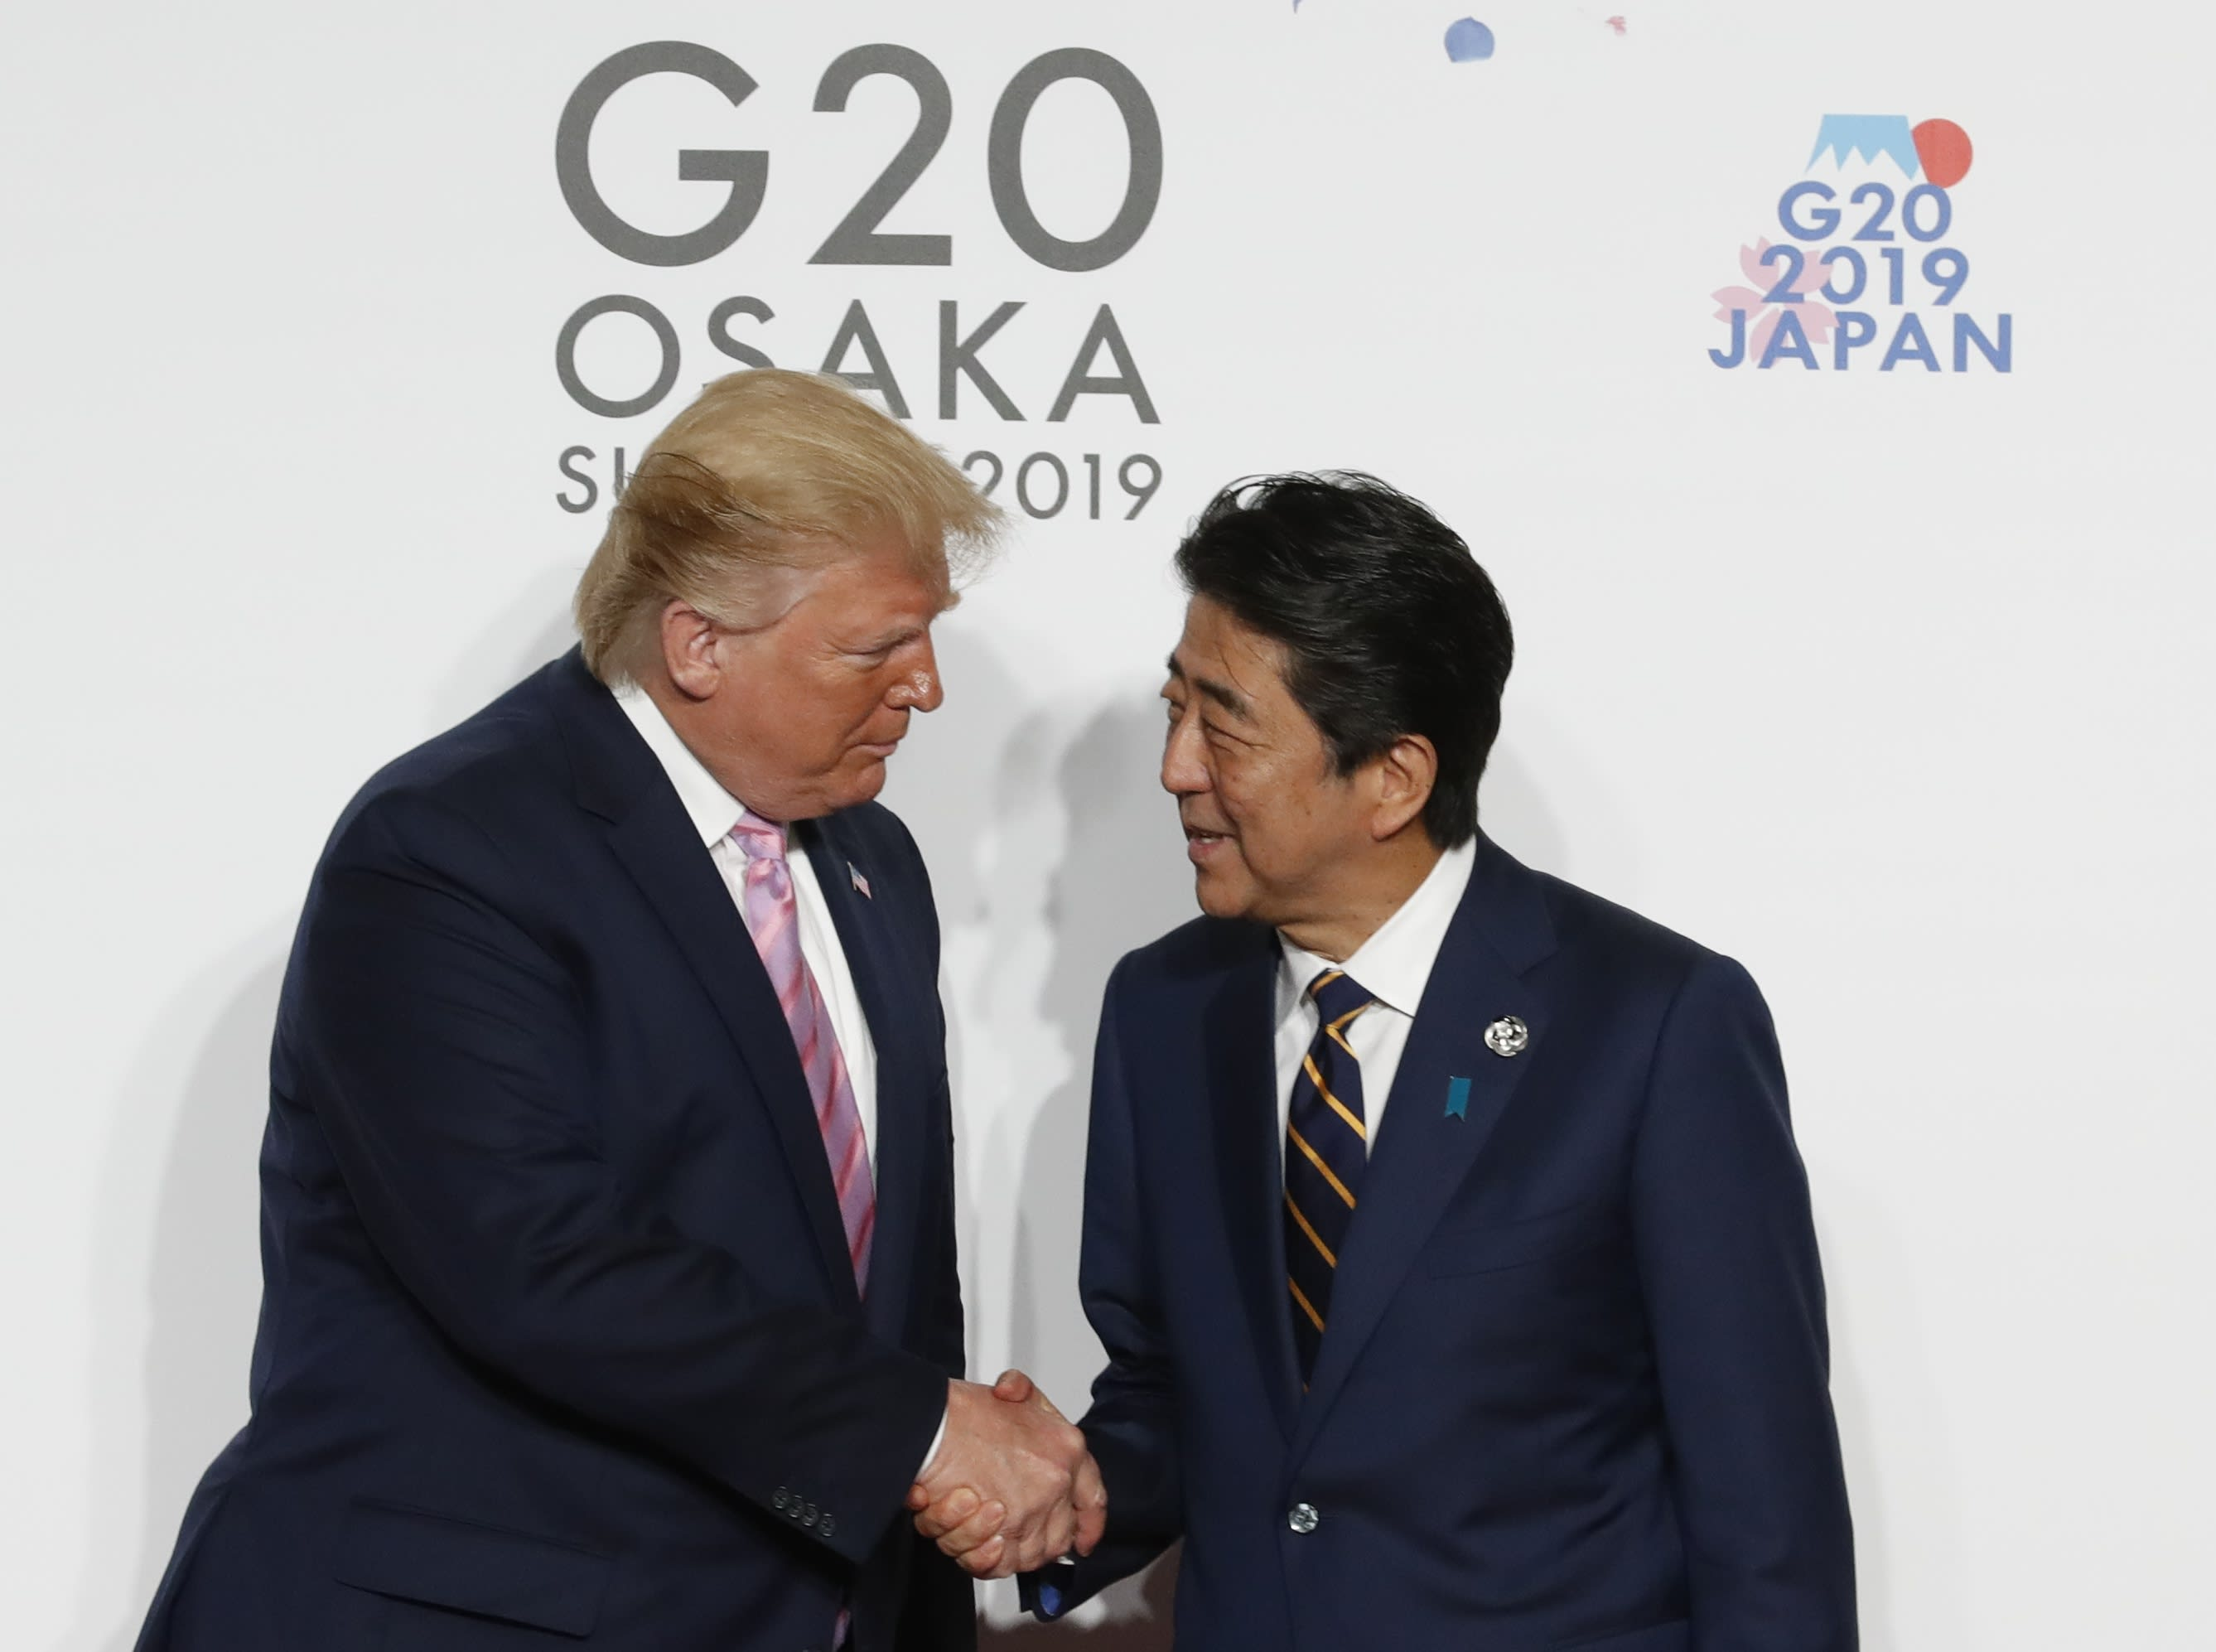 After elections, Japan's leader Abe will be seeking a big win on trade